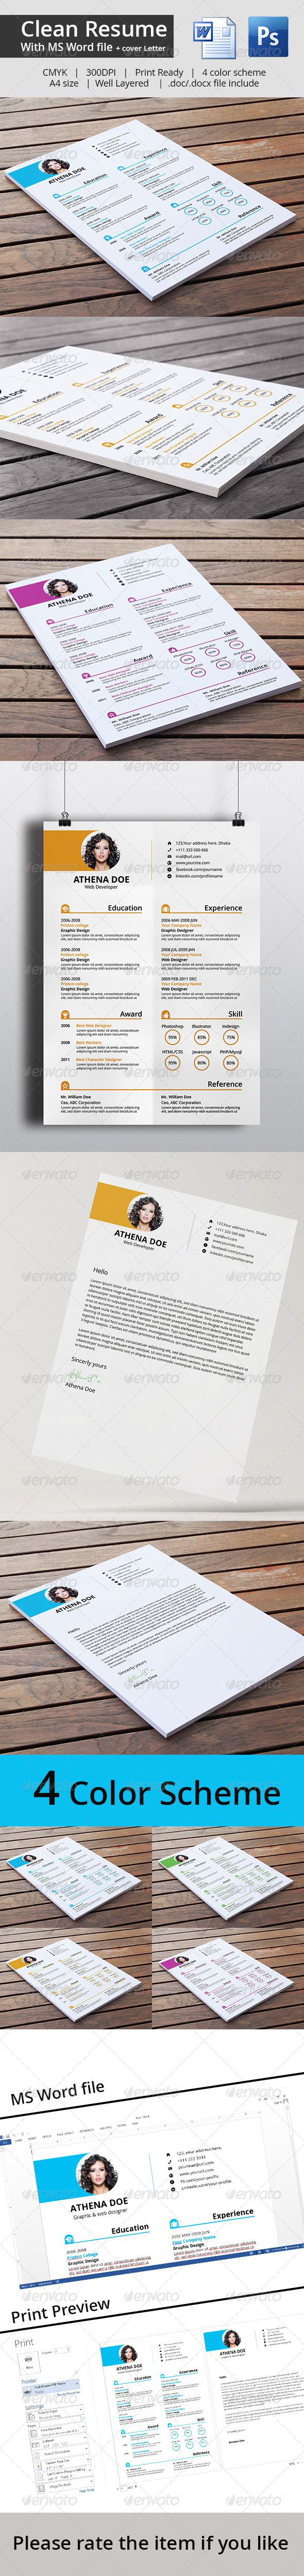 Clean Resume & Cover Letter With MS Word